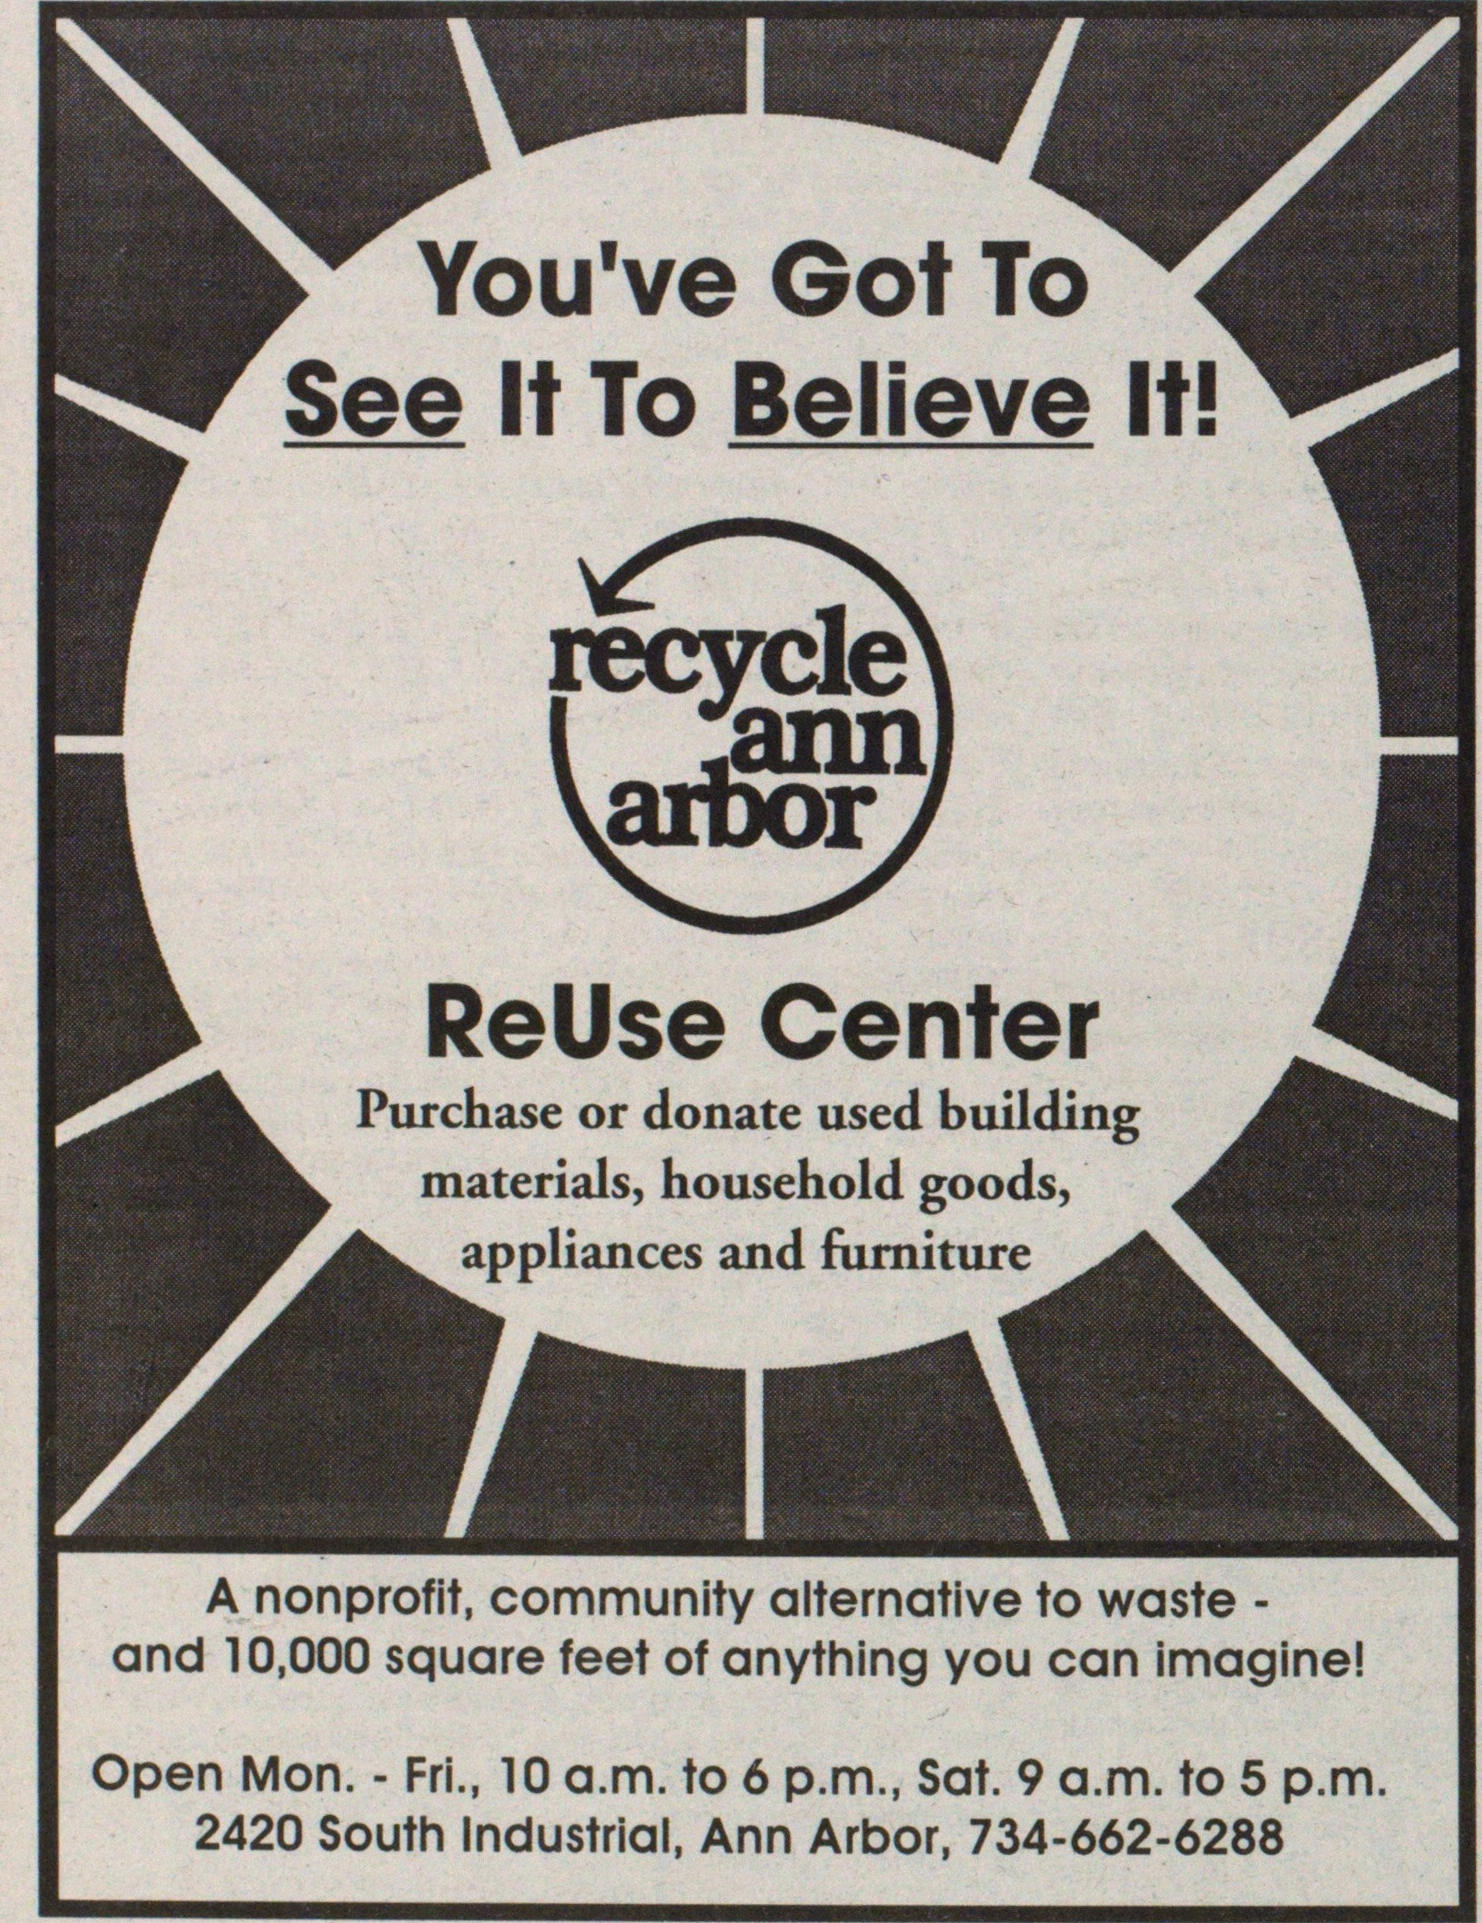 Recycle Ann Arbor image